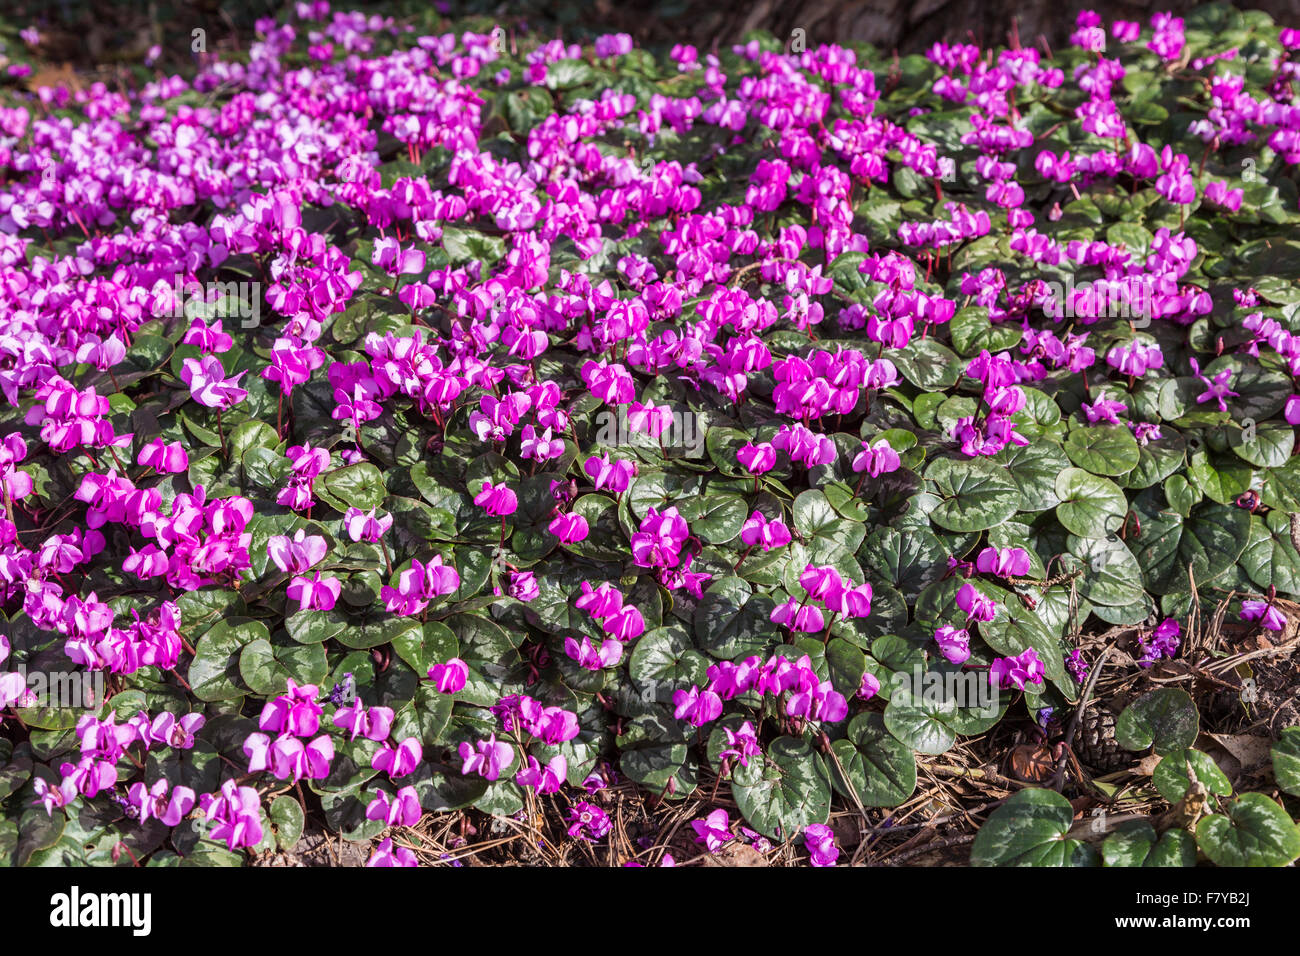 Carpet Of Herbaceous Perennial Cyclamen Coum Flowering In Early